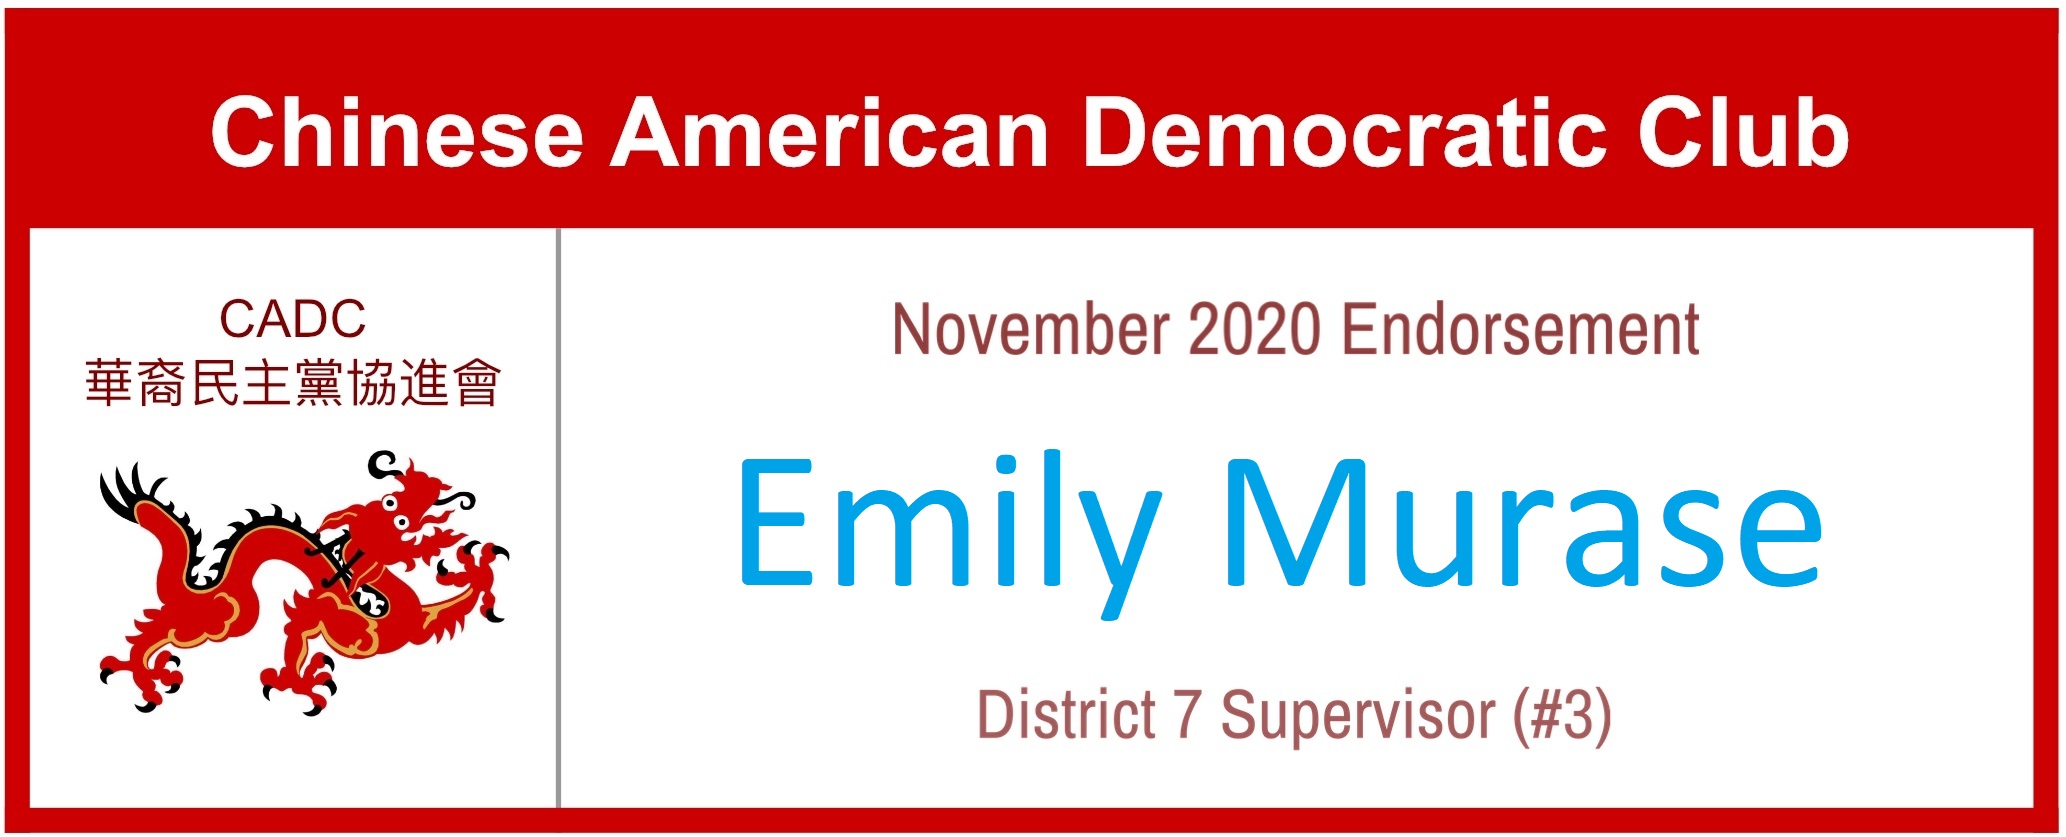 Emily Murase for District 7 Supervisor - CADC #3 Endorsement November 2020